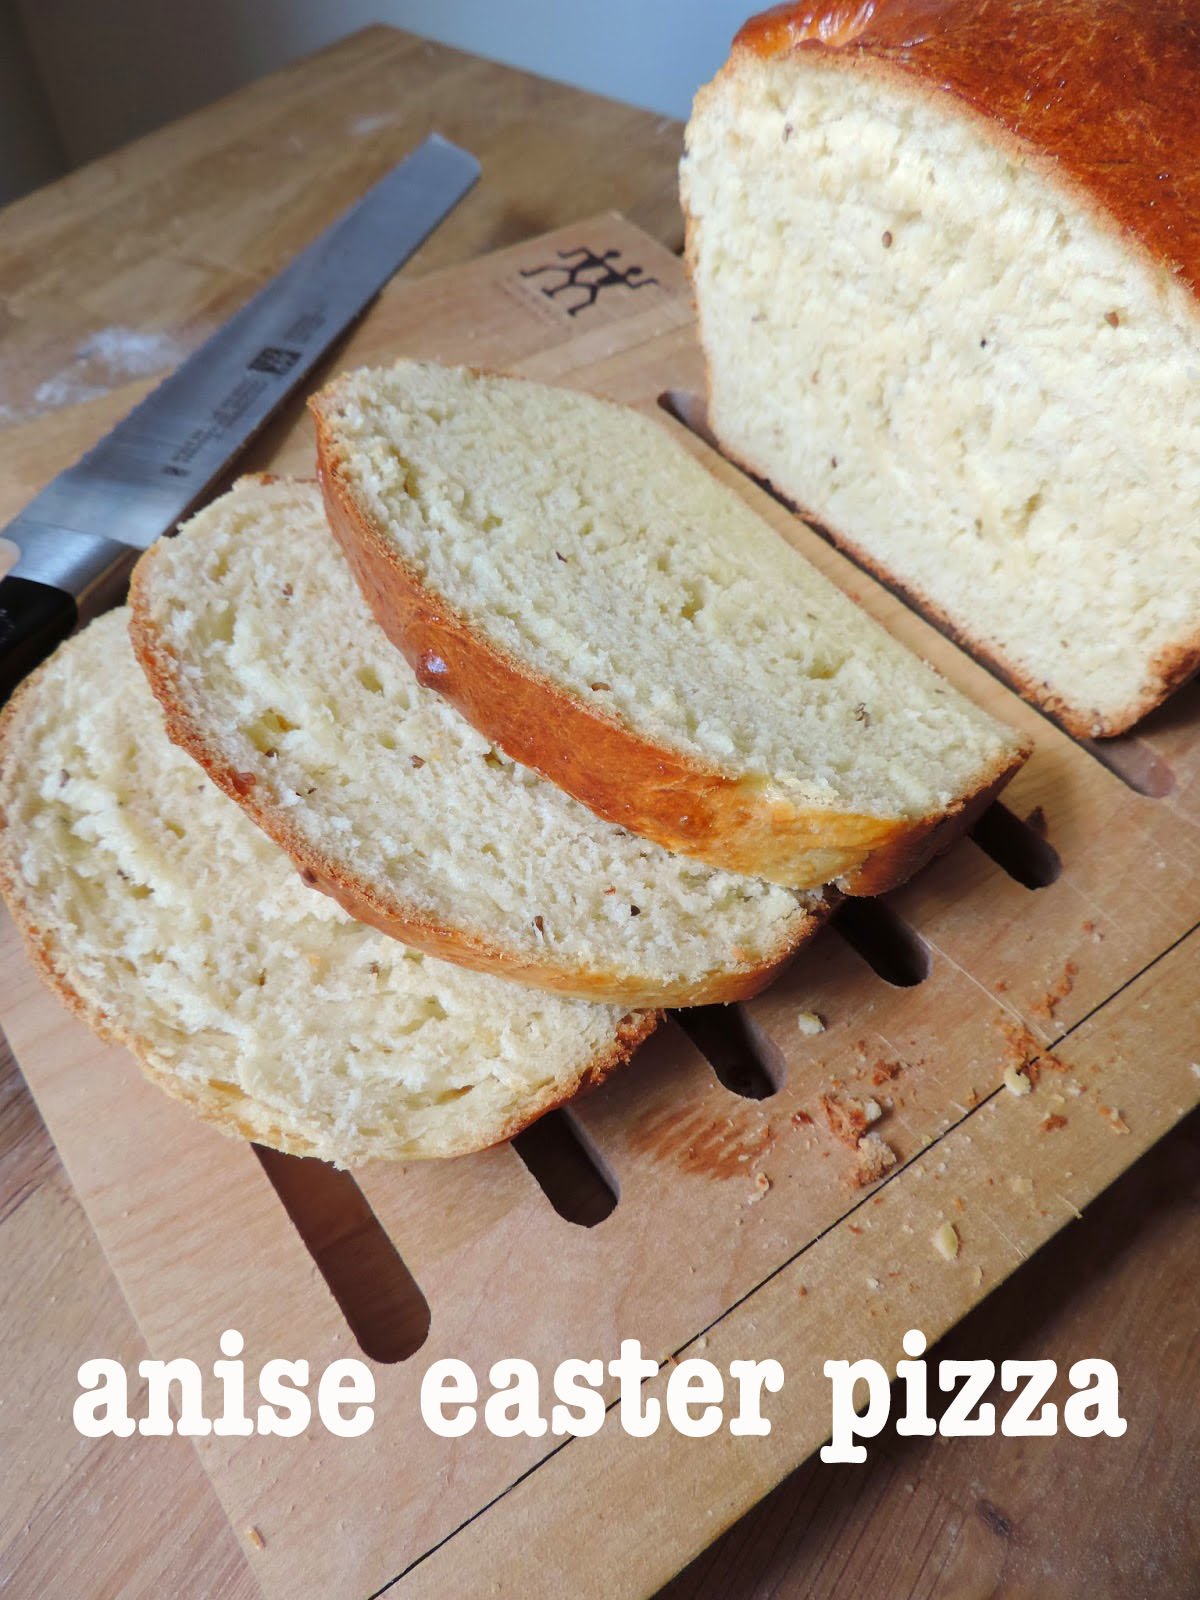 Easter Pizza: A tender yeast bread flavored with anise oil and studded with anise seeds. My father's family's specialty around Easter.